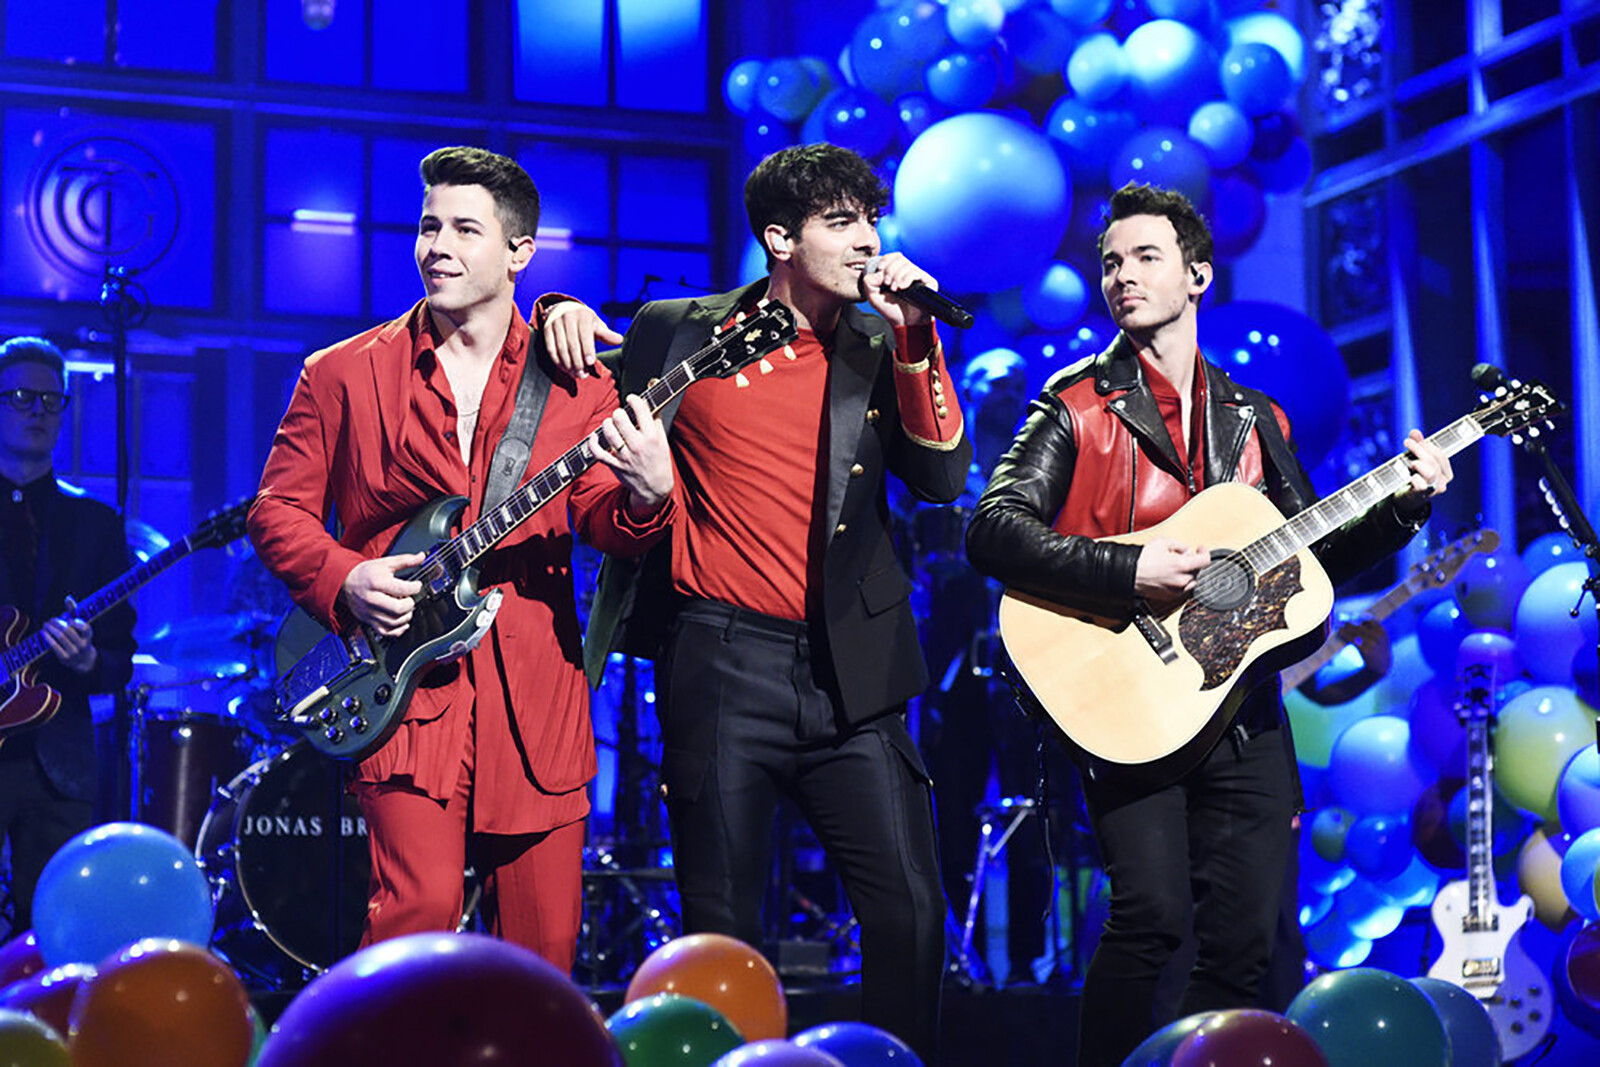 Jonas Brothers to be roasted in Netflix comedy special